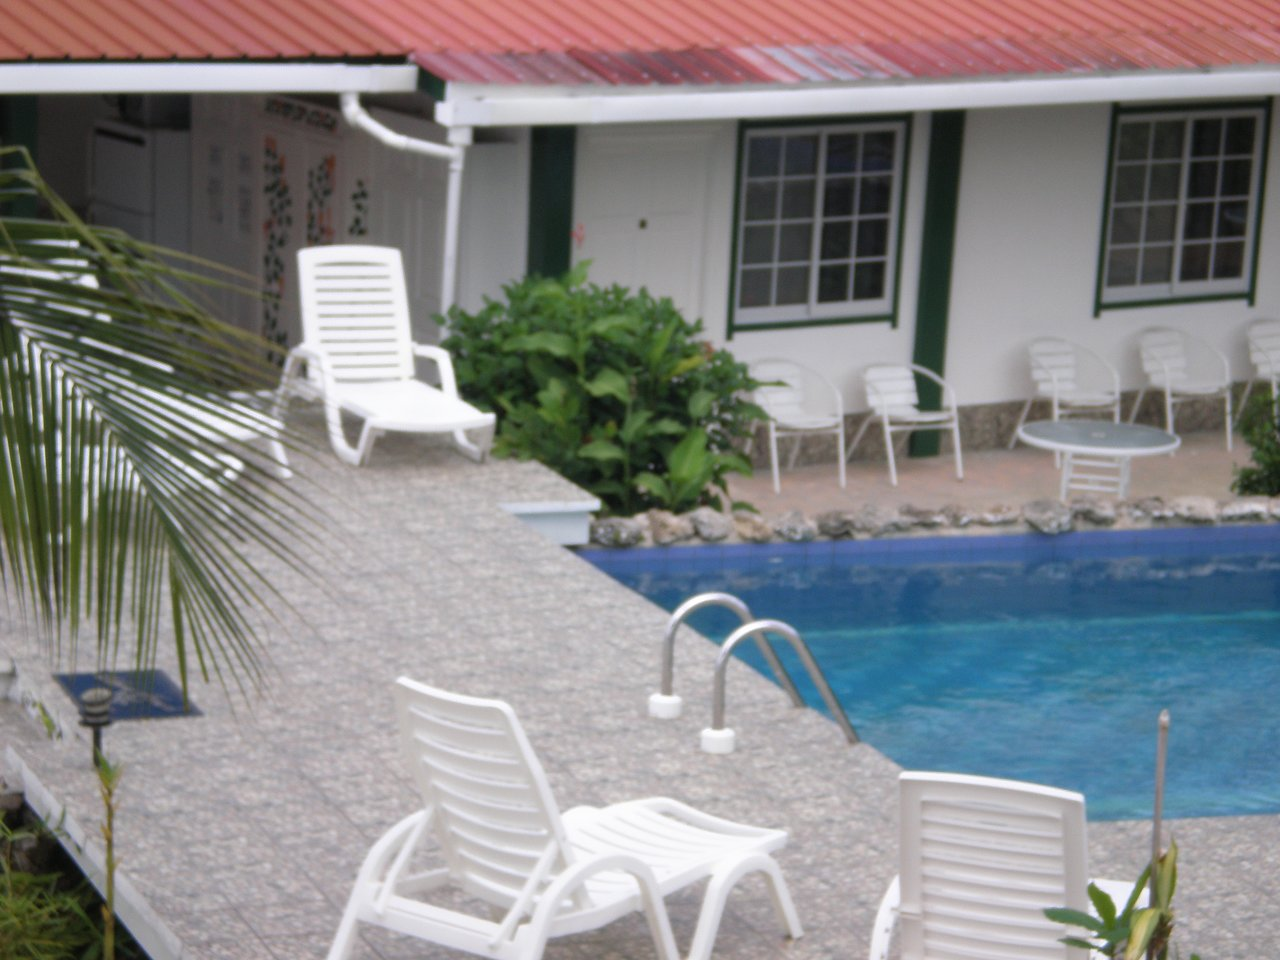 Hotel La Terraza 63 7 7 Reviews Panama Bocas Del